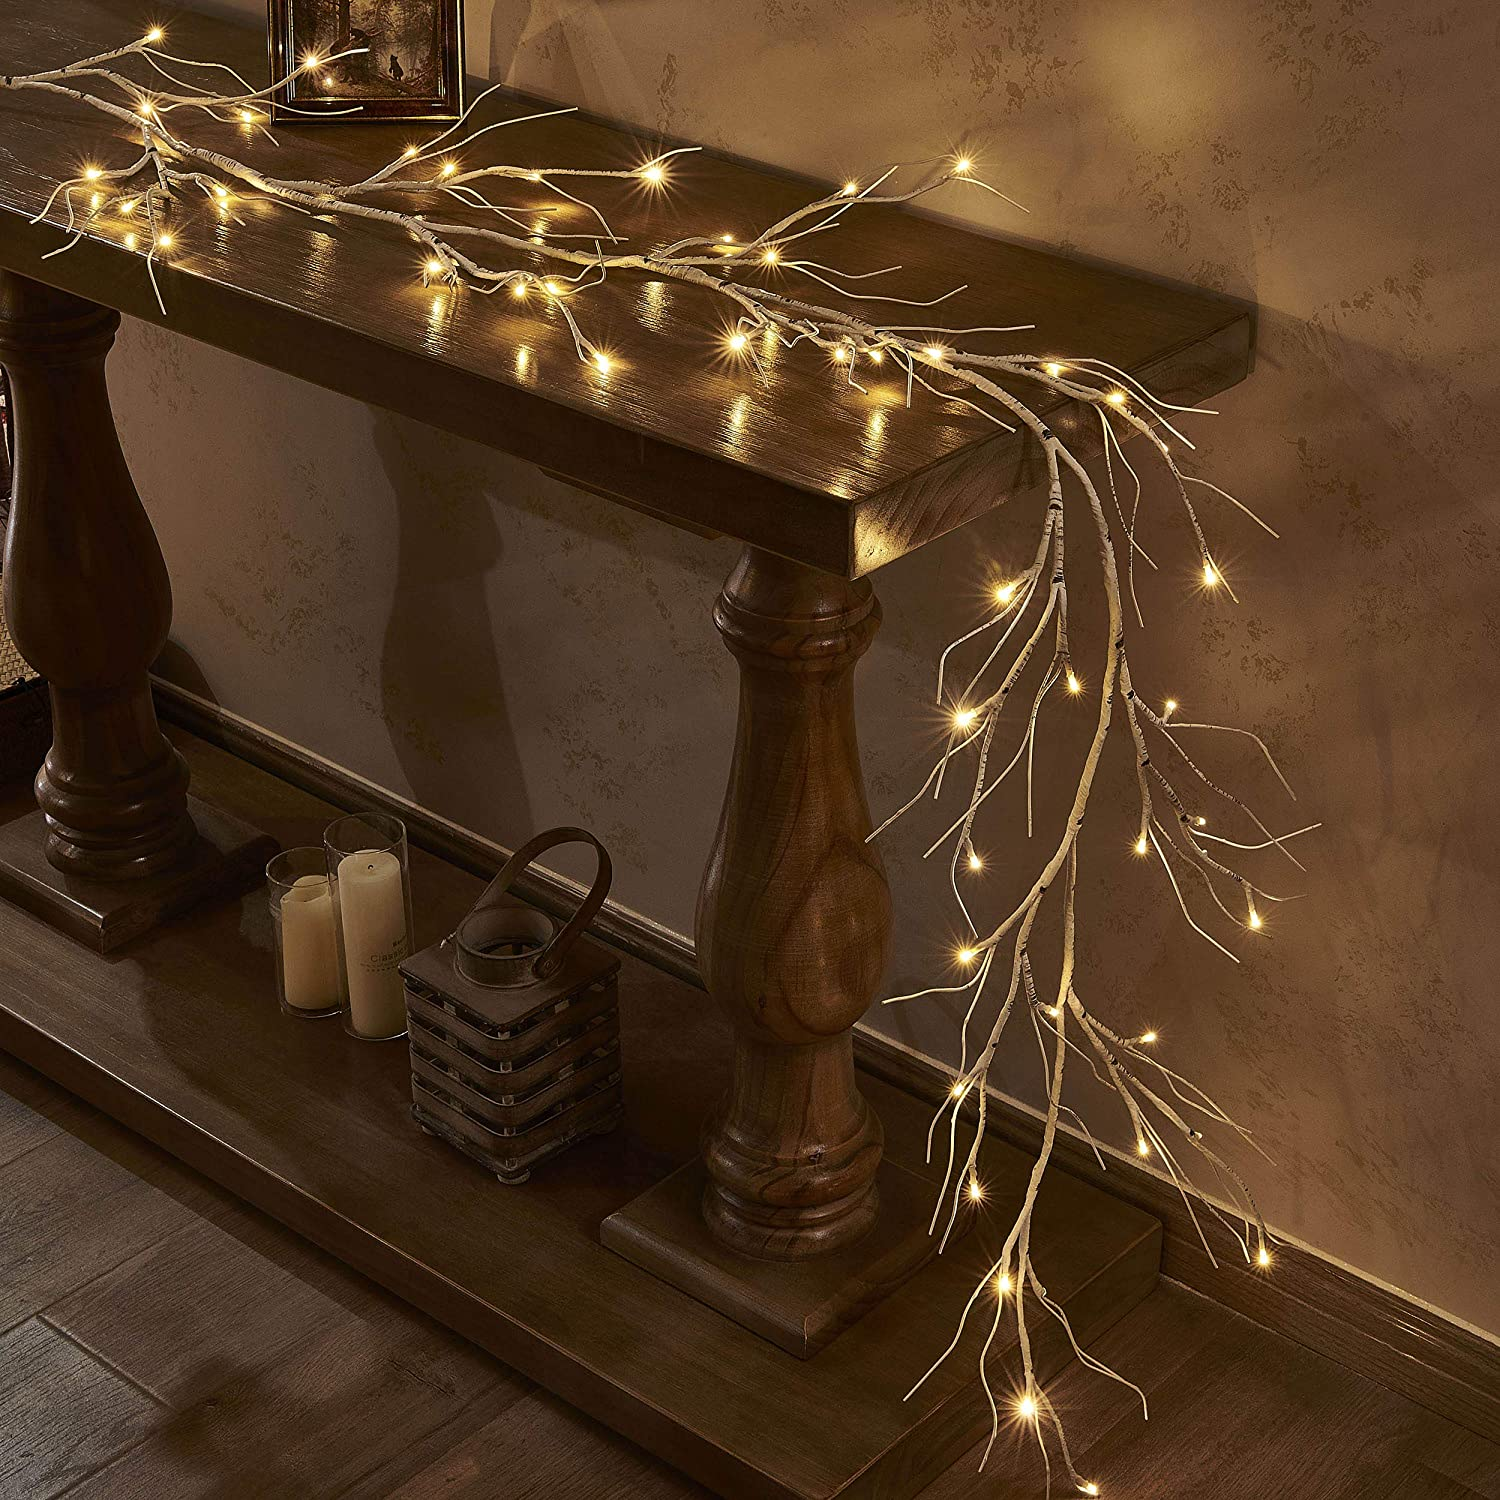 LITBLOOM Lighted Birch Garland 6FT 48 LED Battery Operated with Timer Pre-lit Twig Vine Lights for Christmas Holiday and Party Decoration